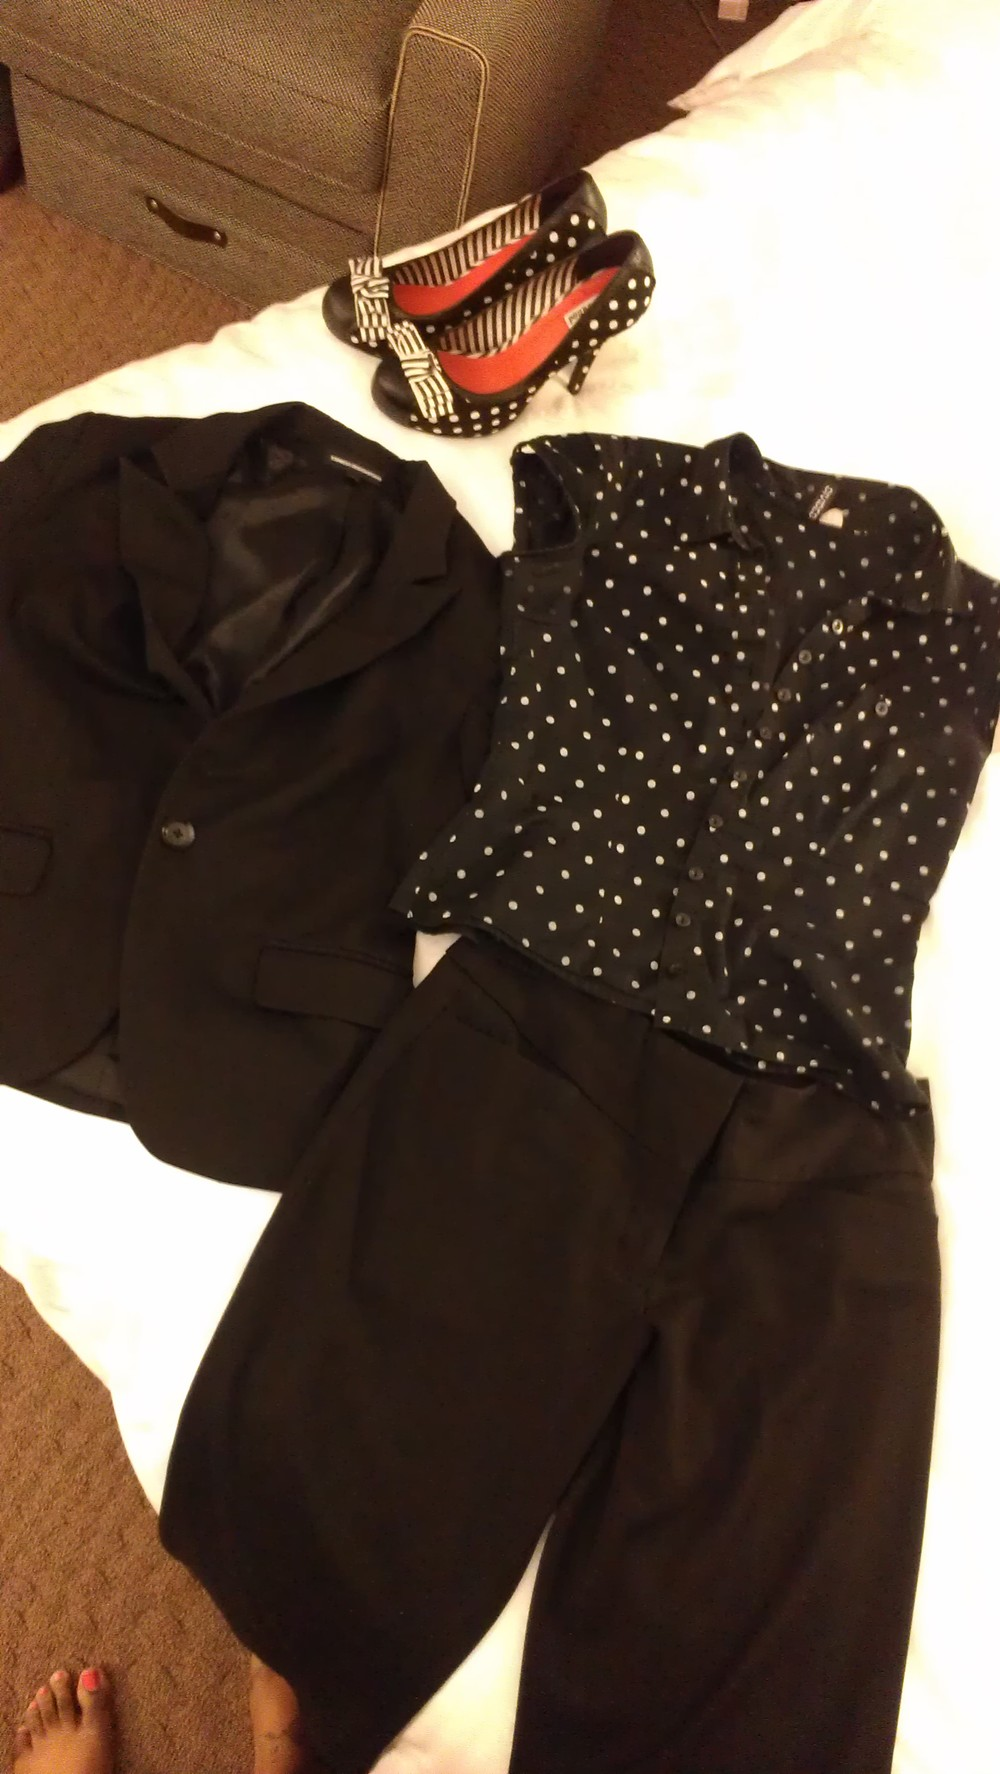 Outfit for the day - black and polka dots!